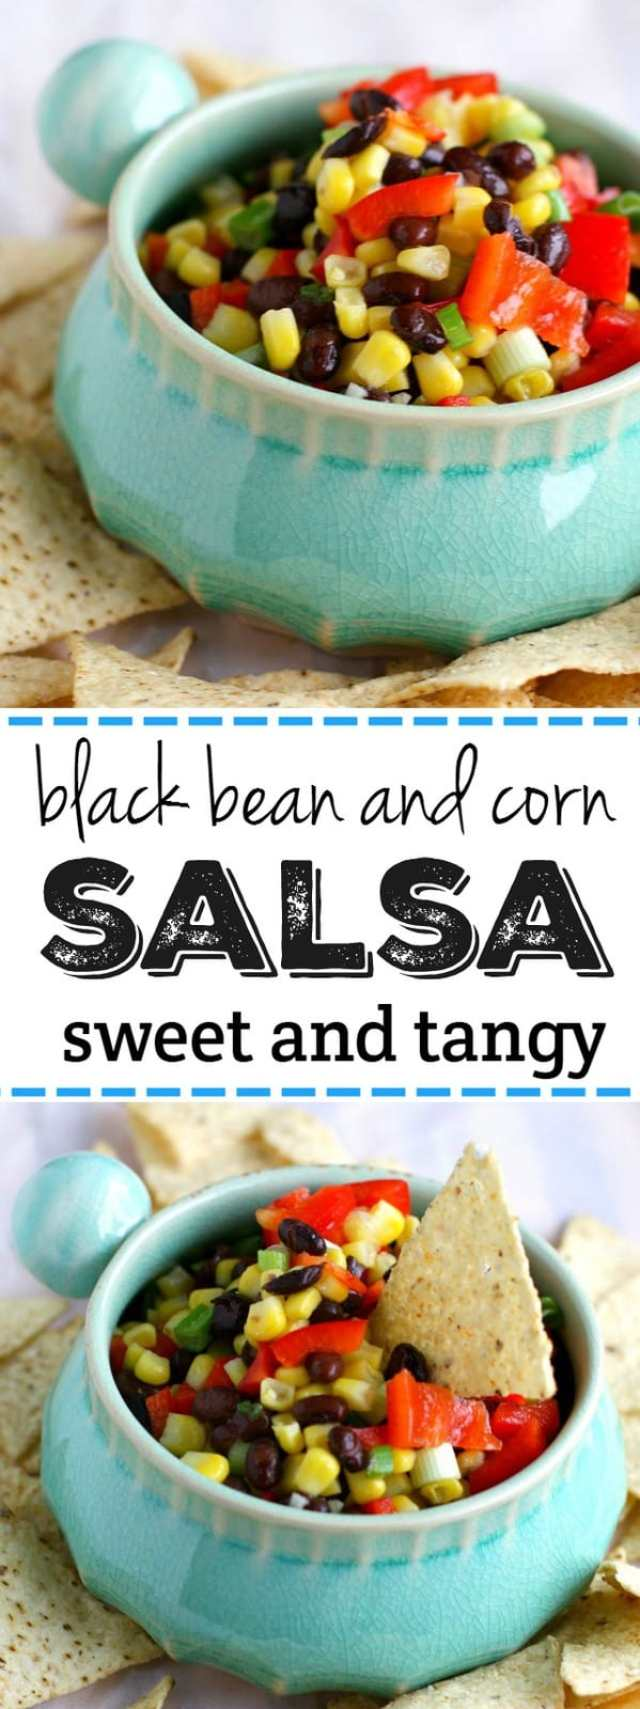 Sweet and tangy black bean and corn salsa is an easy dip that's a real crowd pleaser!